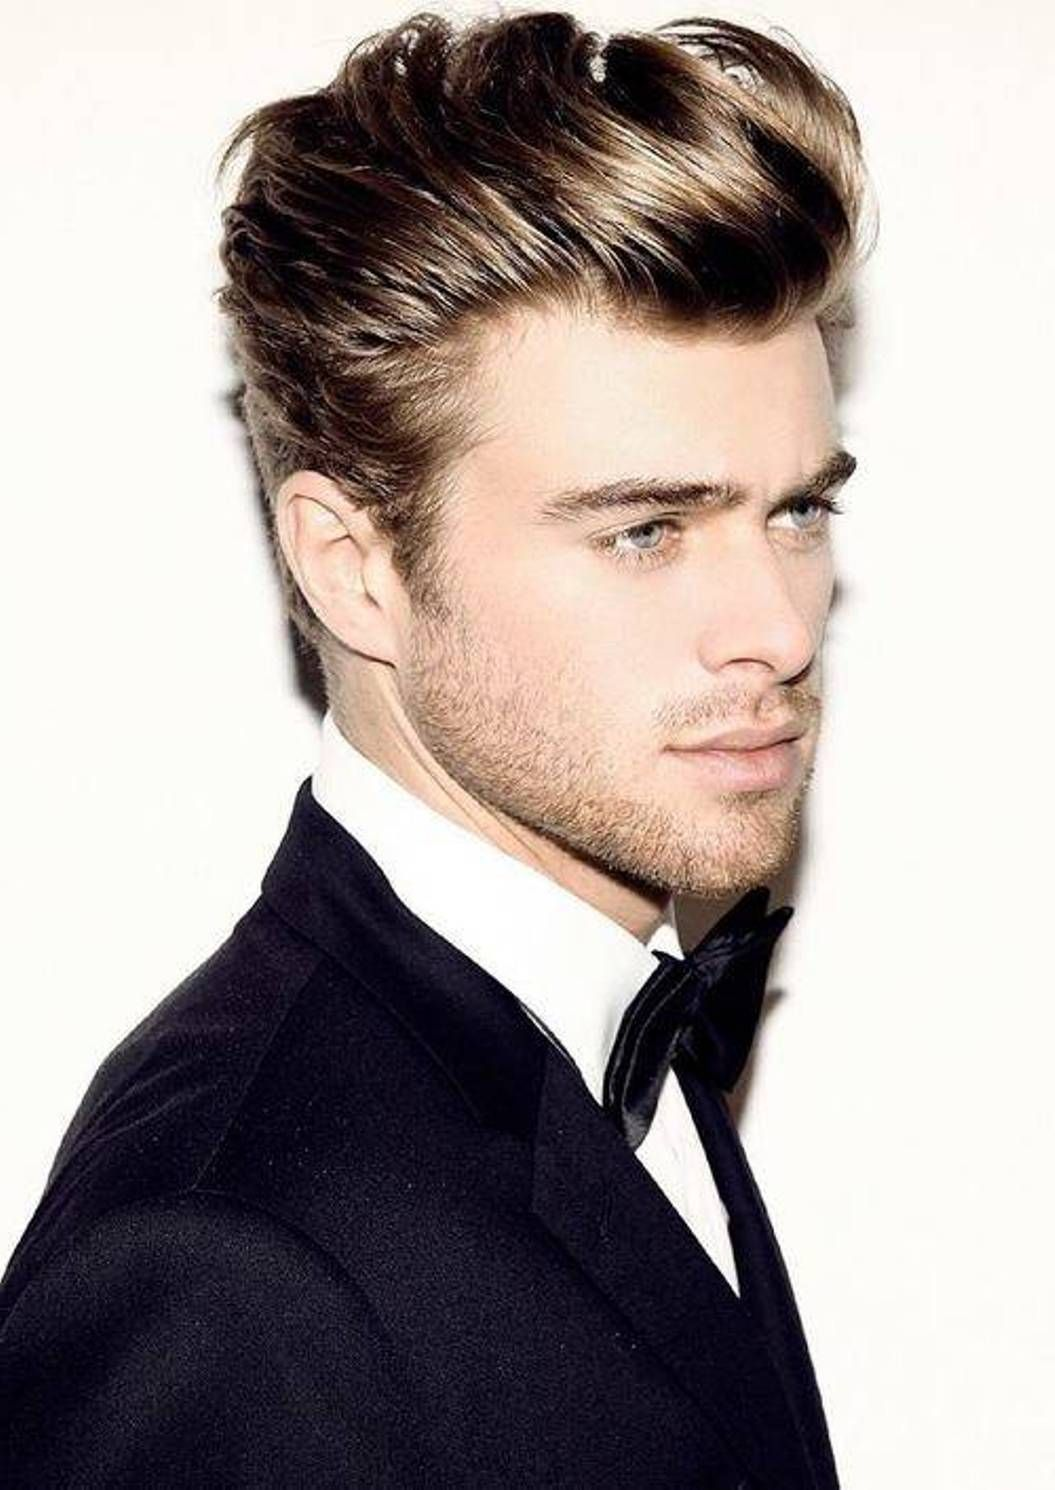 Hairstyles For Guys 1950 Men Curly Hairstyles Viewing Gallery  Globezhair  O Vintage I